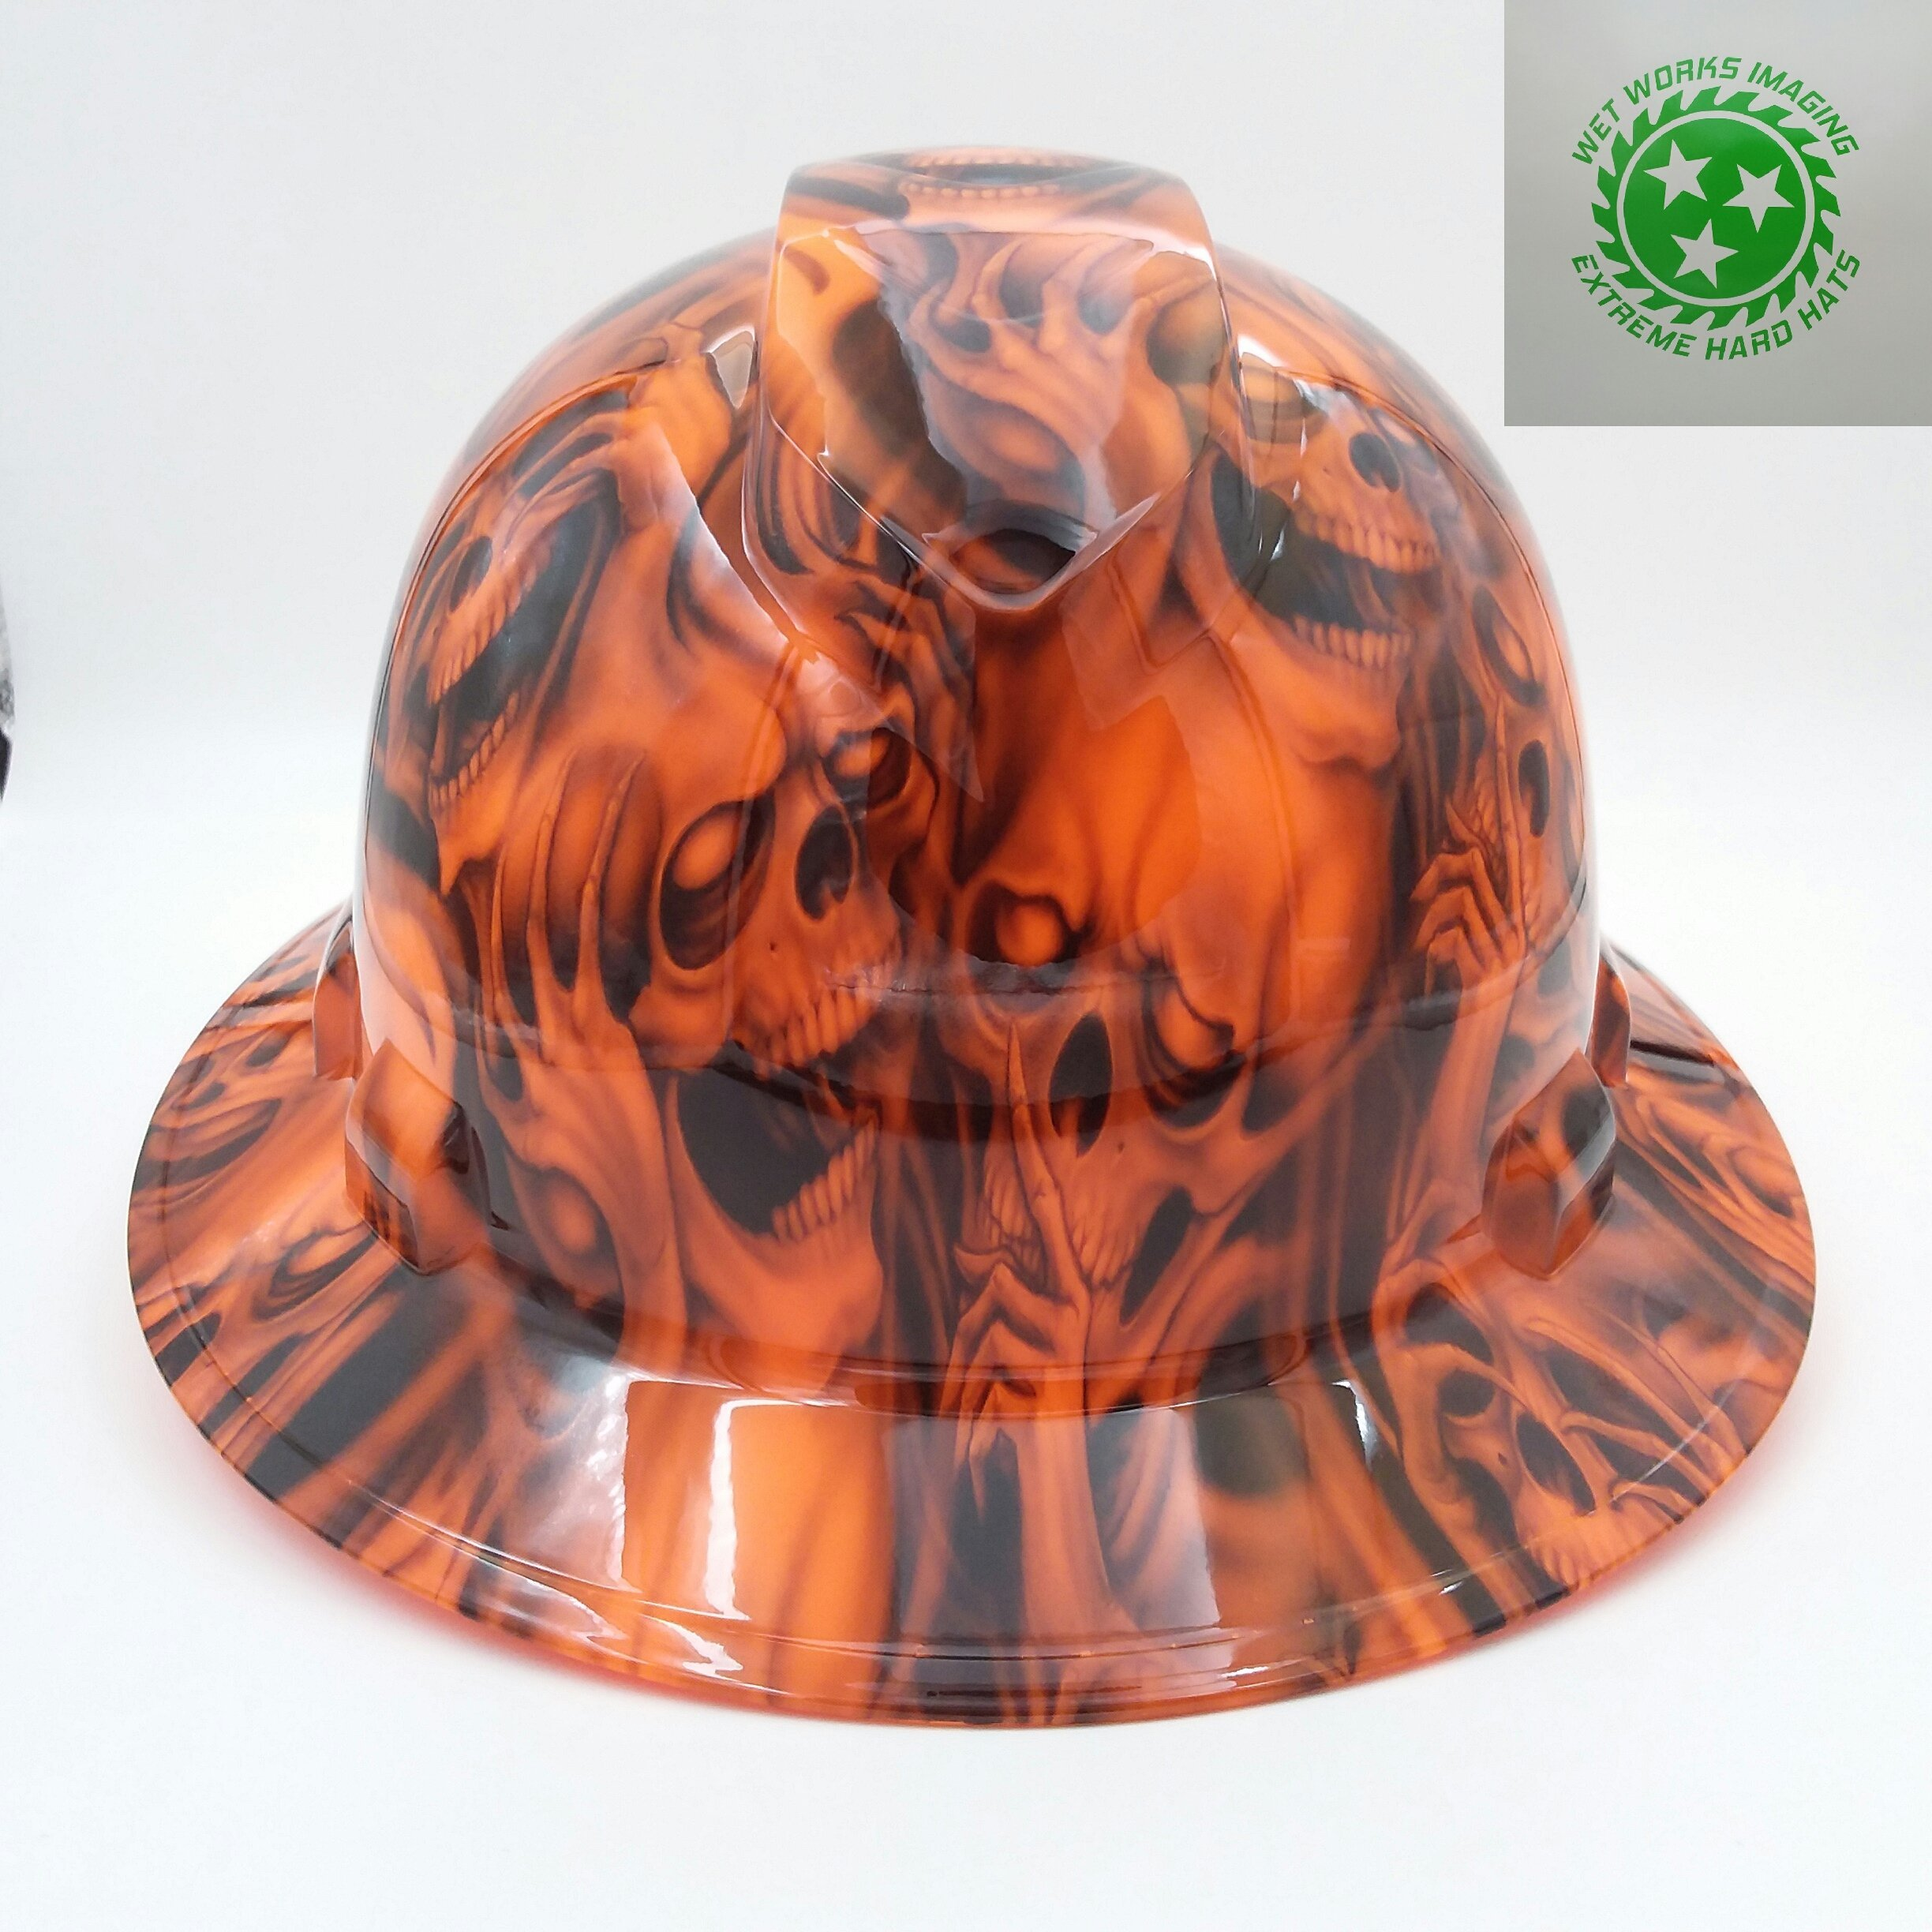 Wet Works Imaging Customized Pyramex Full Brim Orange See No Evil Skulls Hard Hat With Ratcheting Suspension by Wet Works Imaging